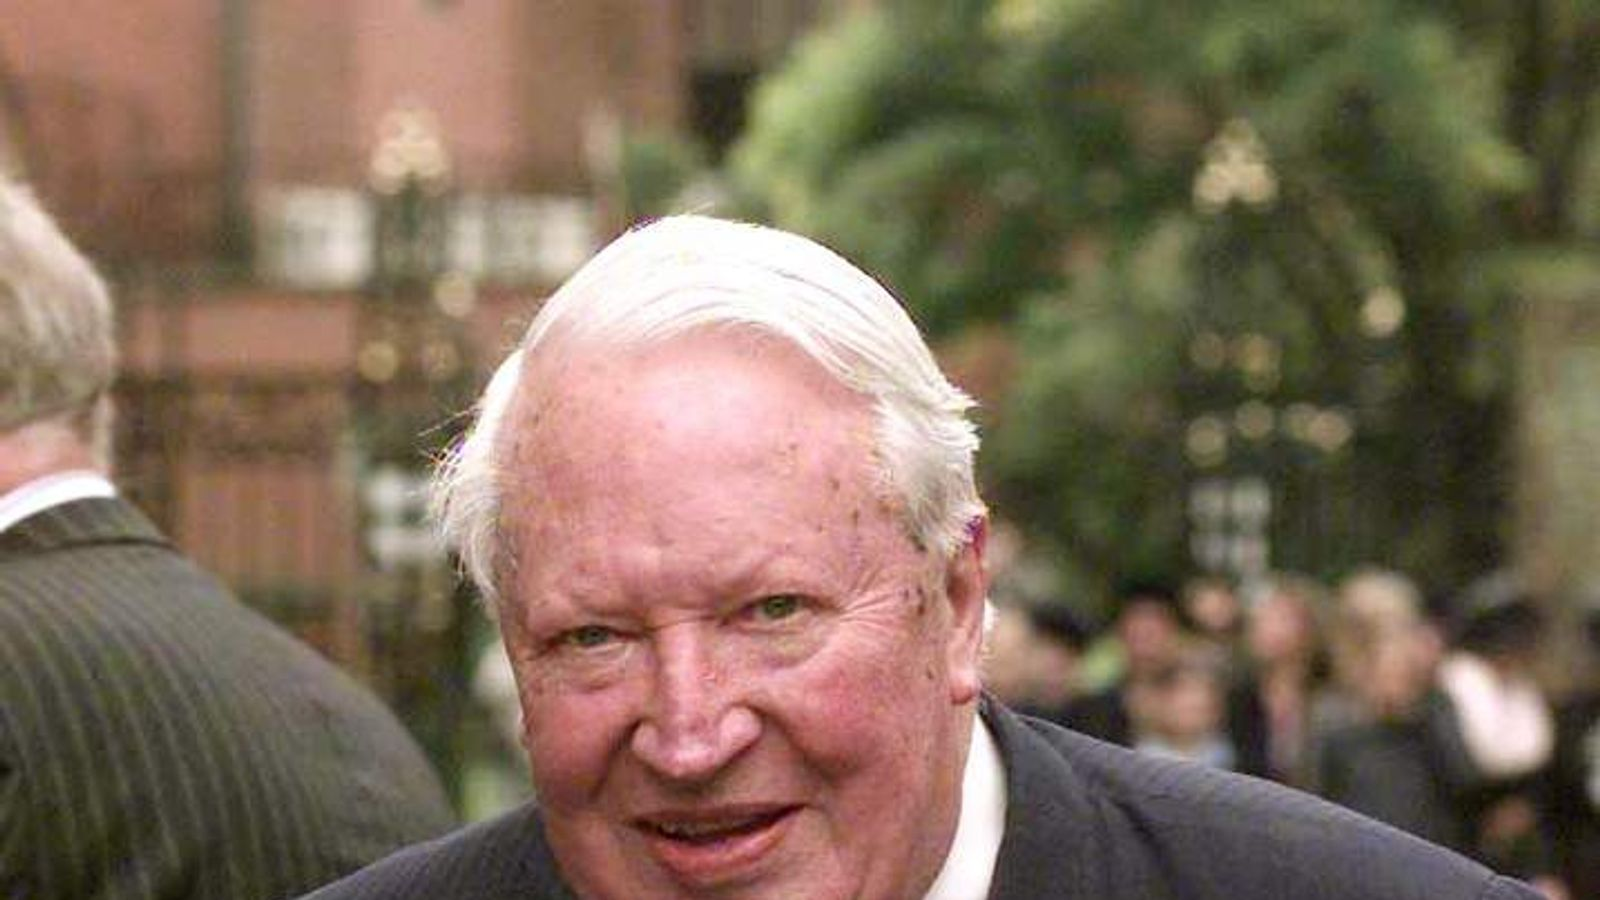 Sir Edward Heath arrives for the start of the Viscount Whitelaw Memorial service at Carlisle Cathedral in 1999.